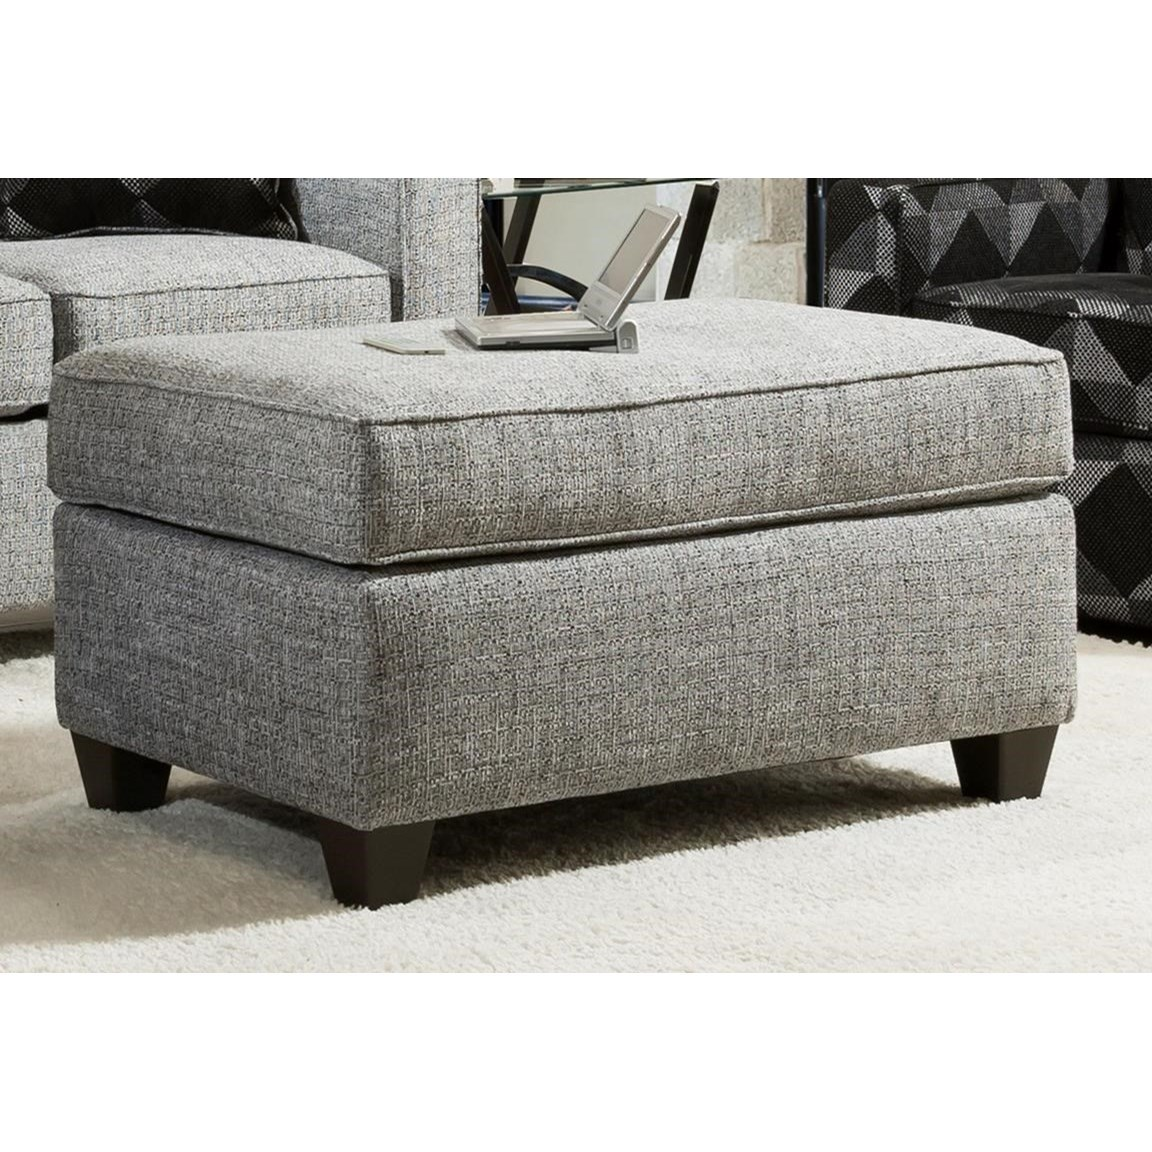 3660 Ottoman by Peak Living at Prime Brothers Furniture